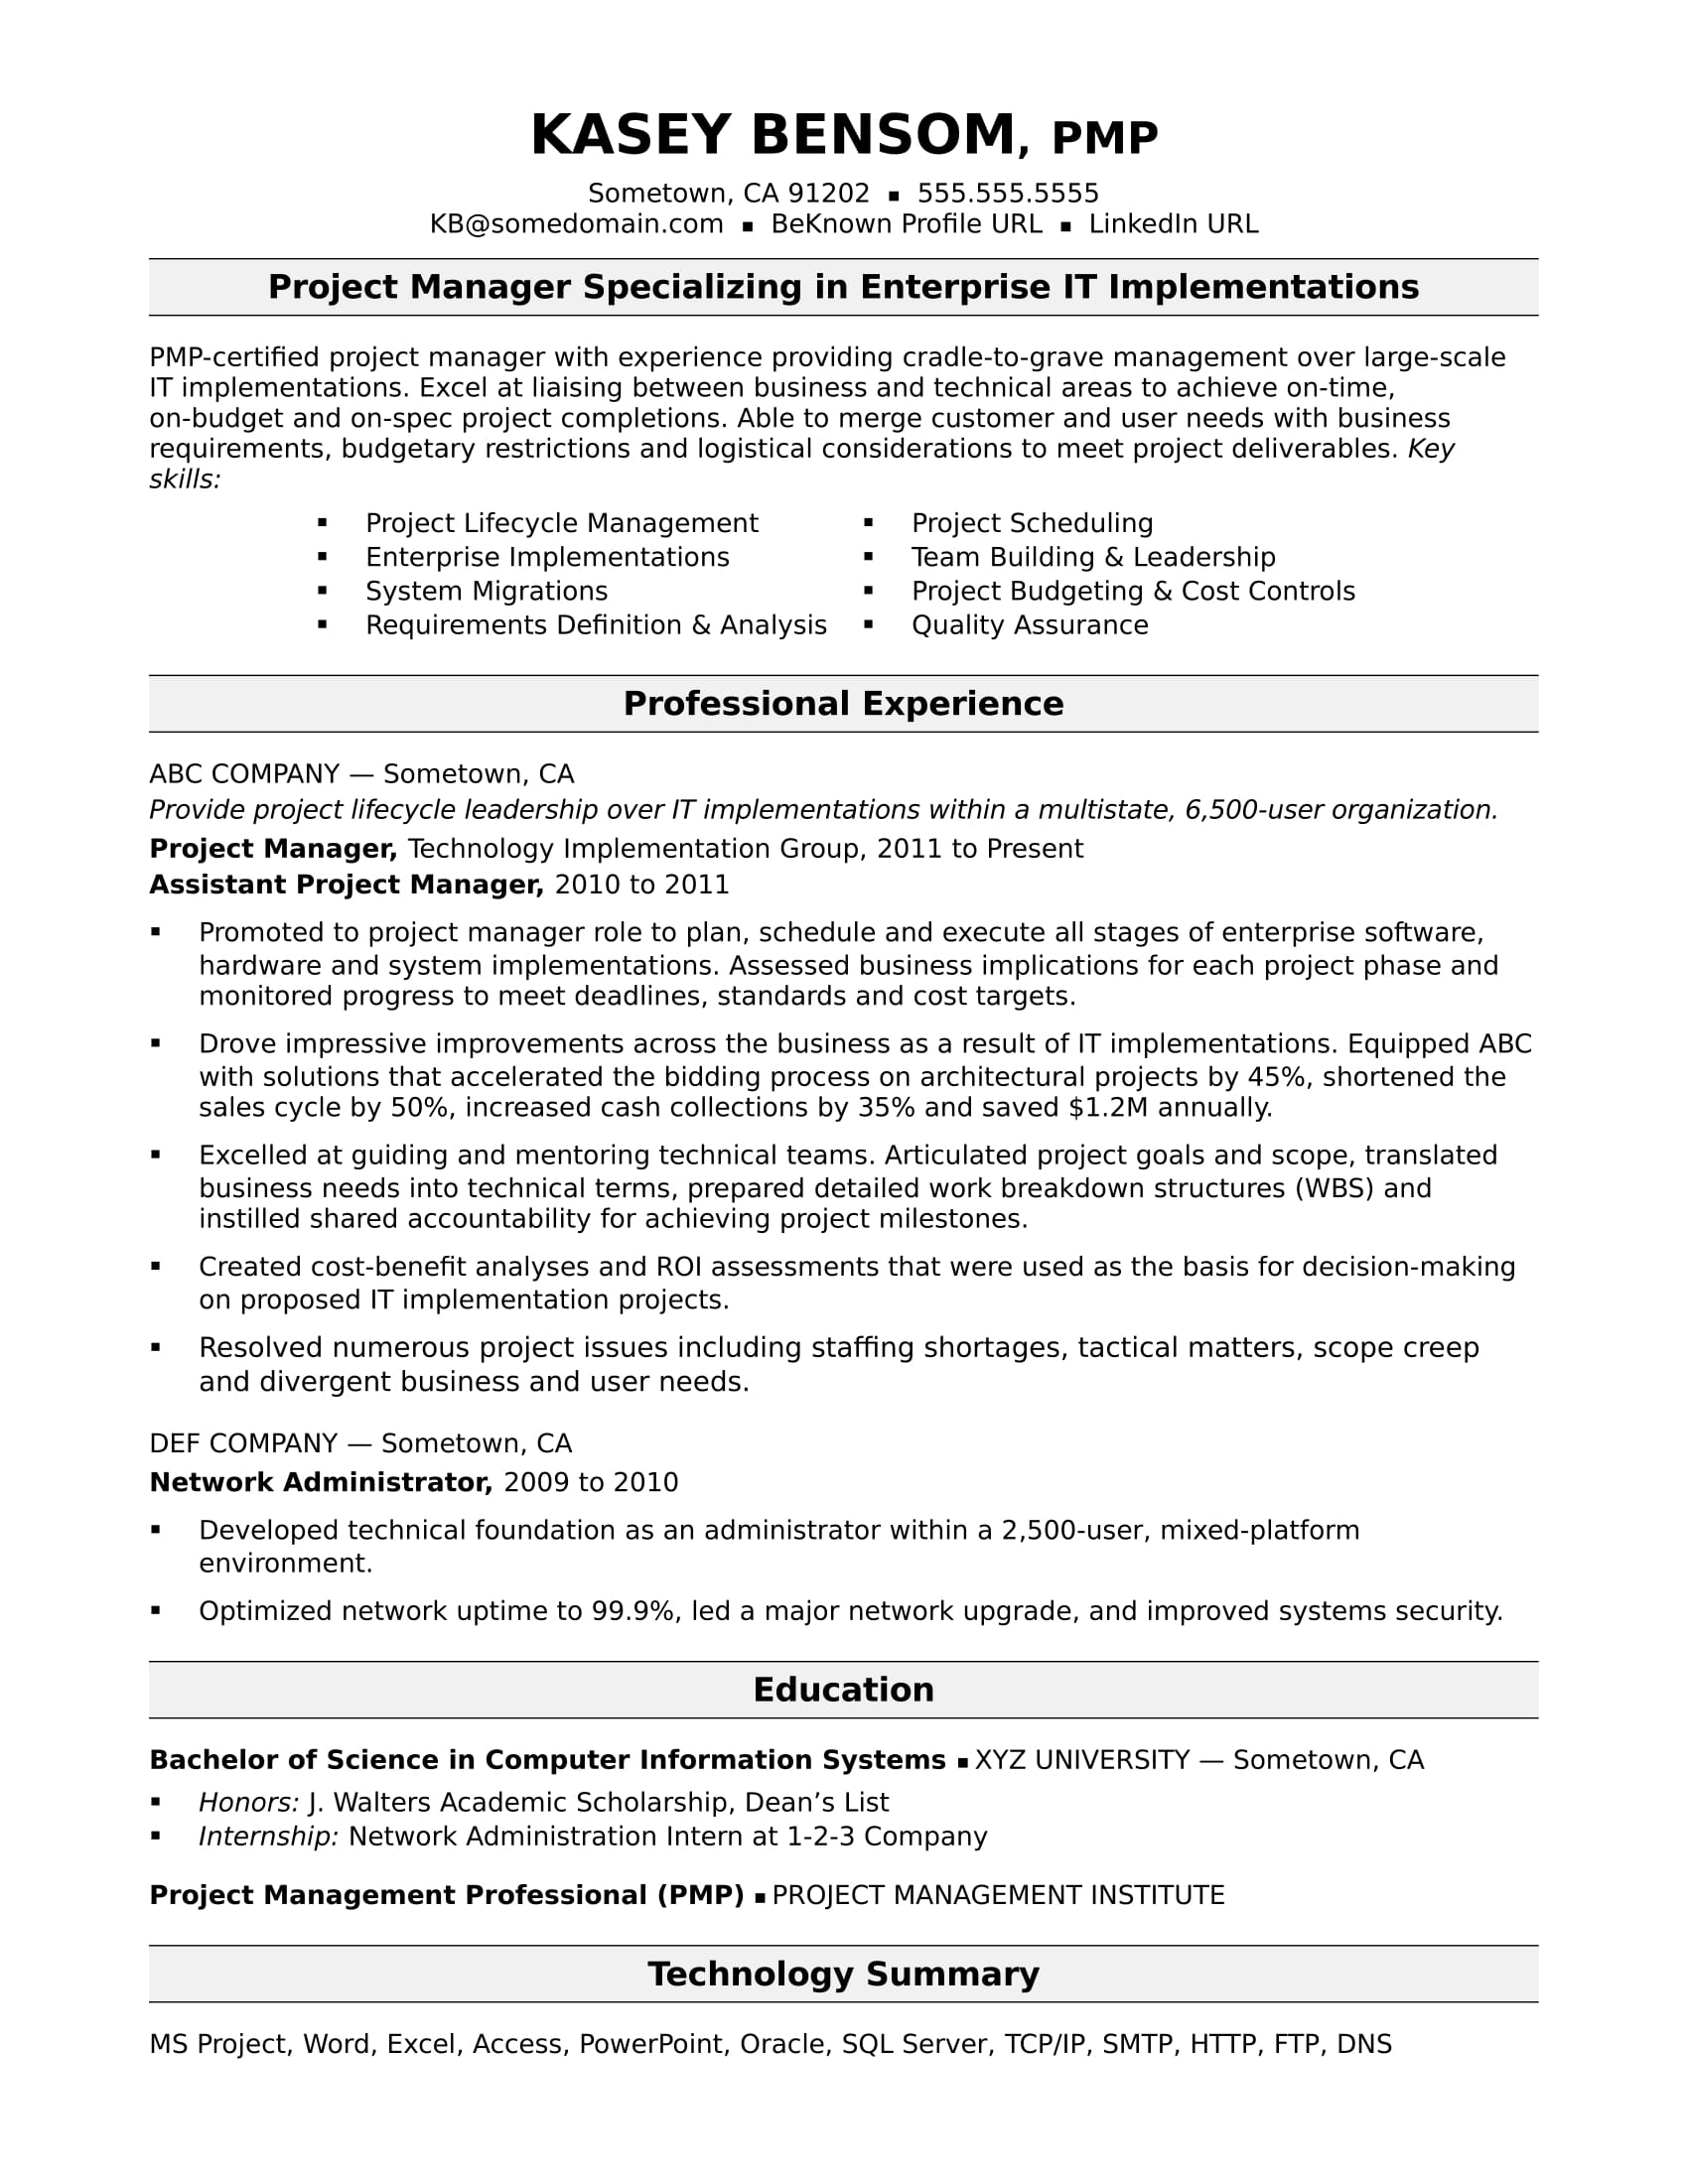 sample resume for midlevel it project manager monster education recent college graduate Resume Education Project Manager Resume